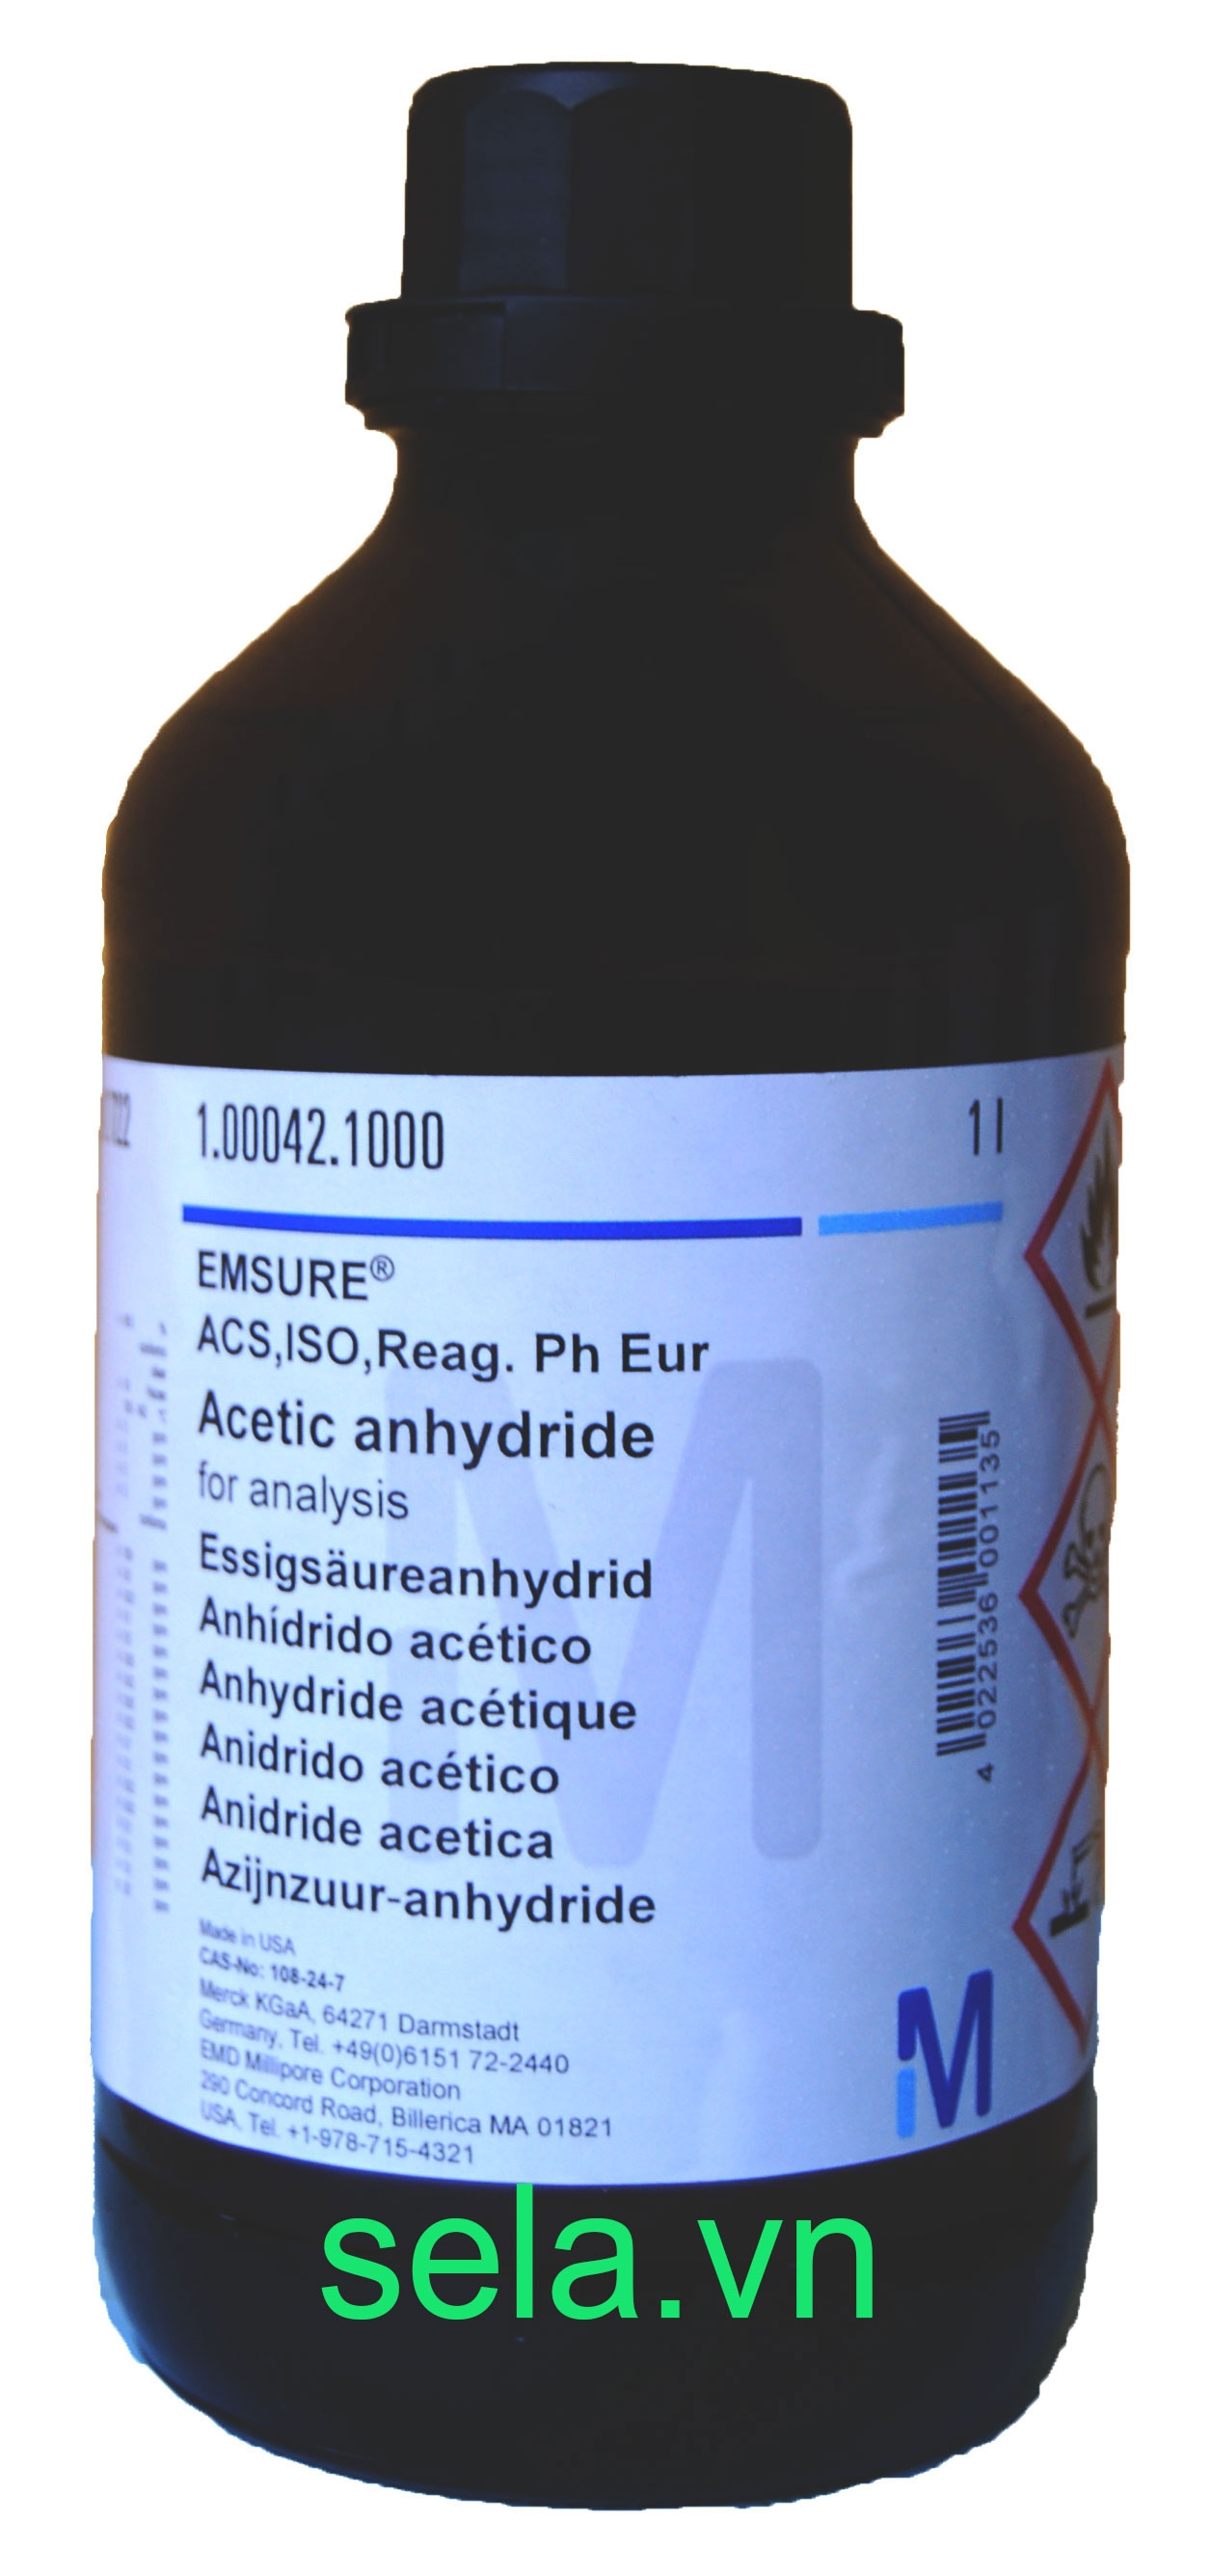 Acetic anhydride for analysis EMSURE® ACS,ISO,Reag. Ph Eur